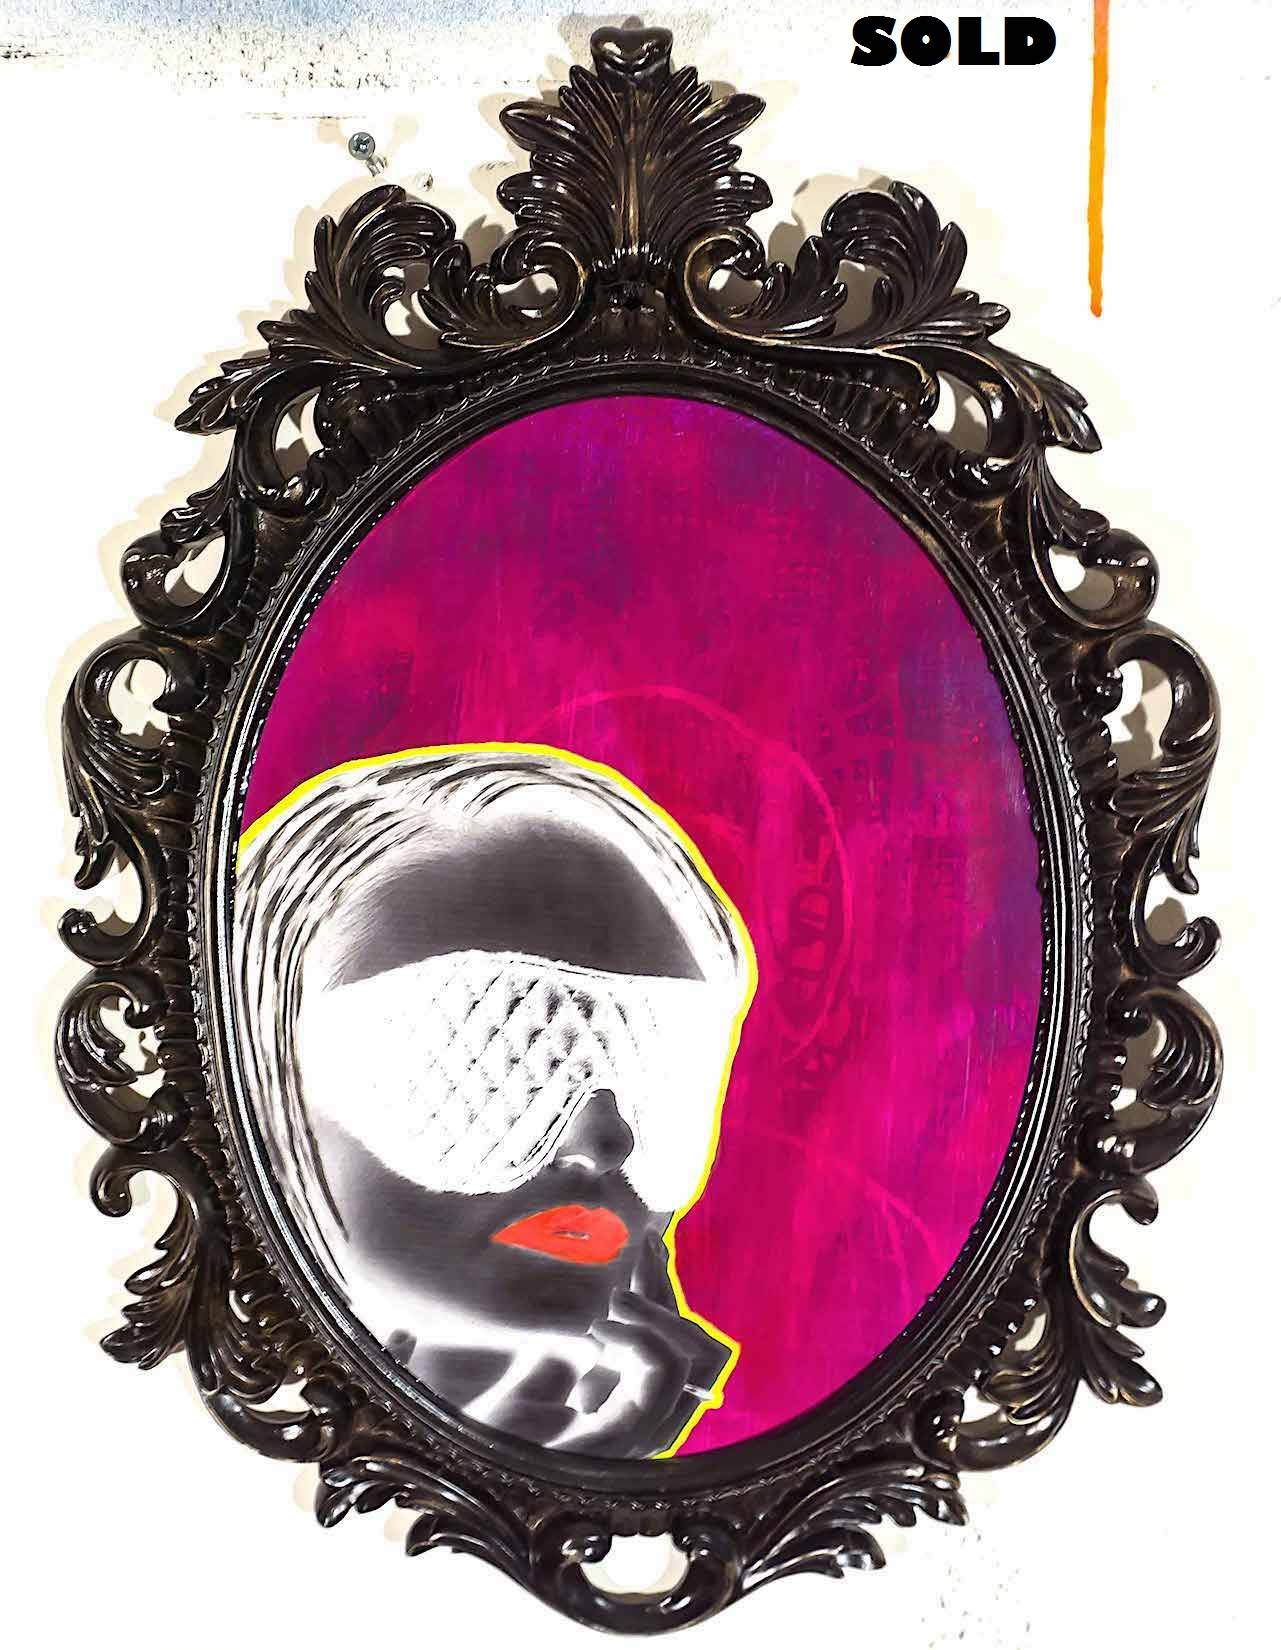 """""""No Promises"""" acrylic paint and collage on wood panel with painted plaster artist frame 18 x 13 x 2 inches, 2017, signed, titled, and dated by the artist on the reverse"""